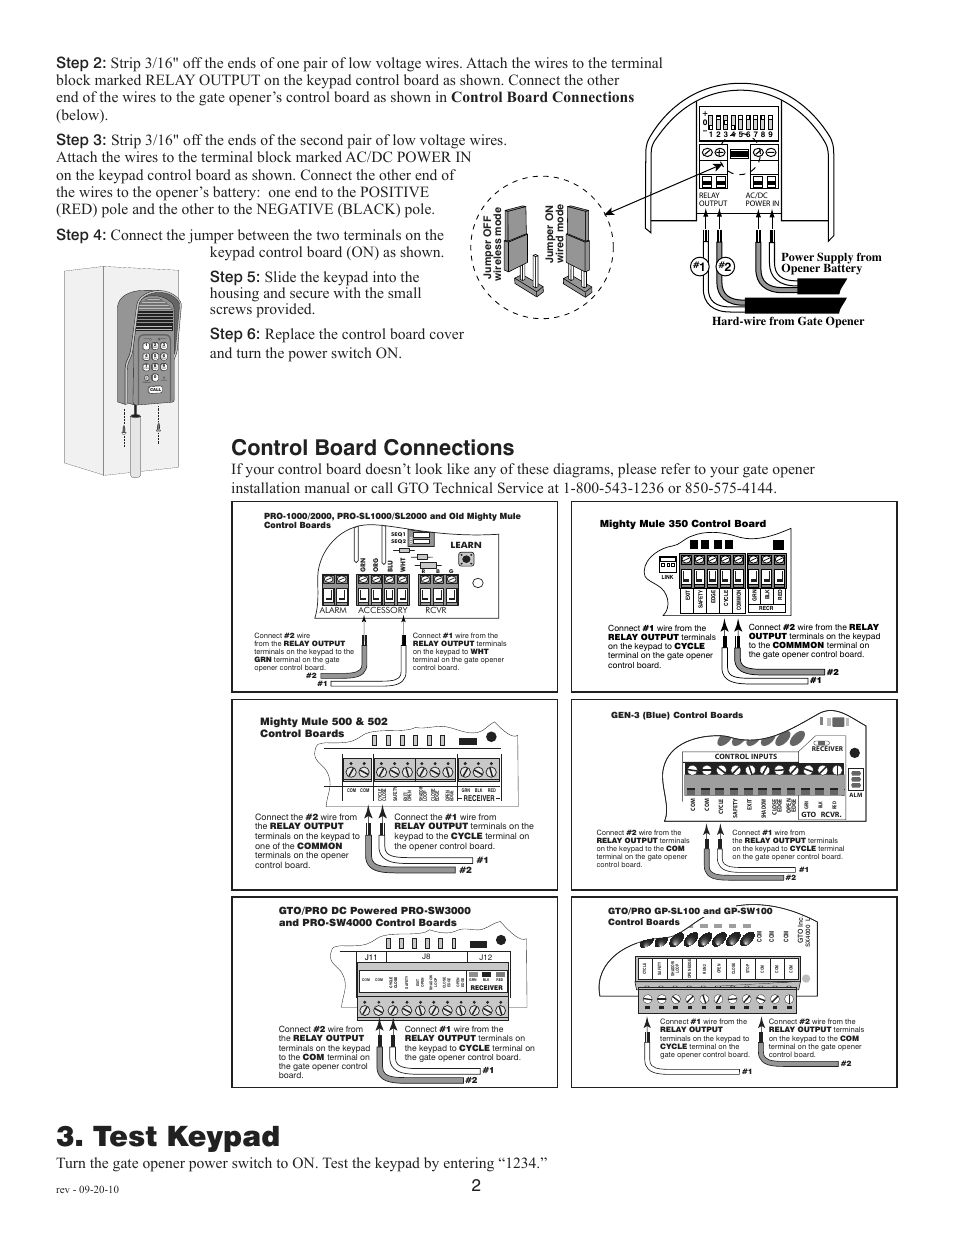 hight resolution of test keypad control board connections status program calling granted mighty mule fm136 user manual page 4 8